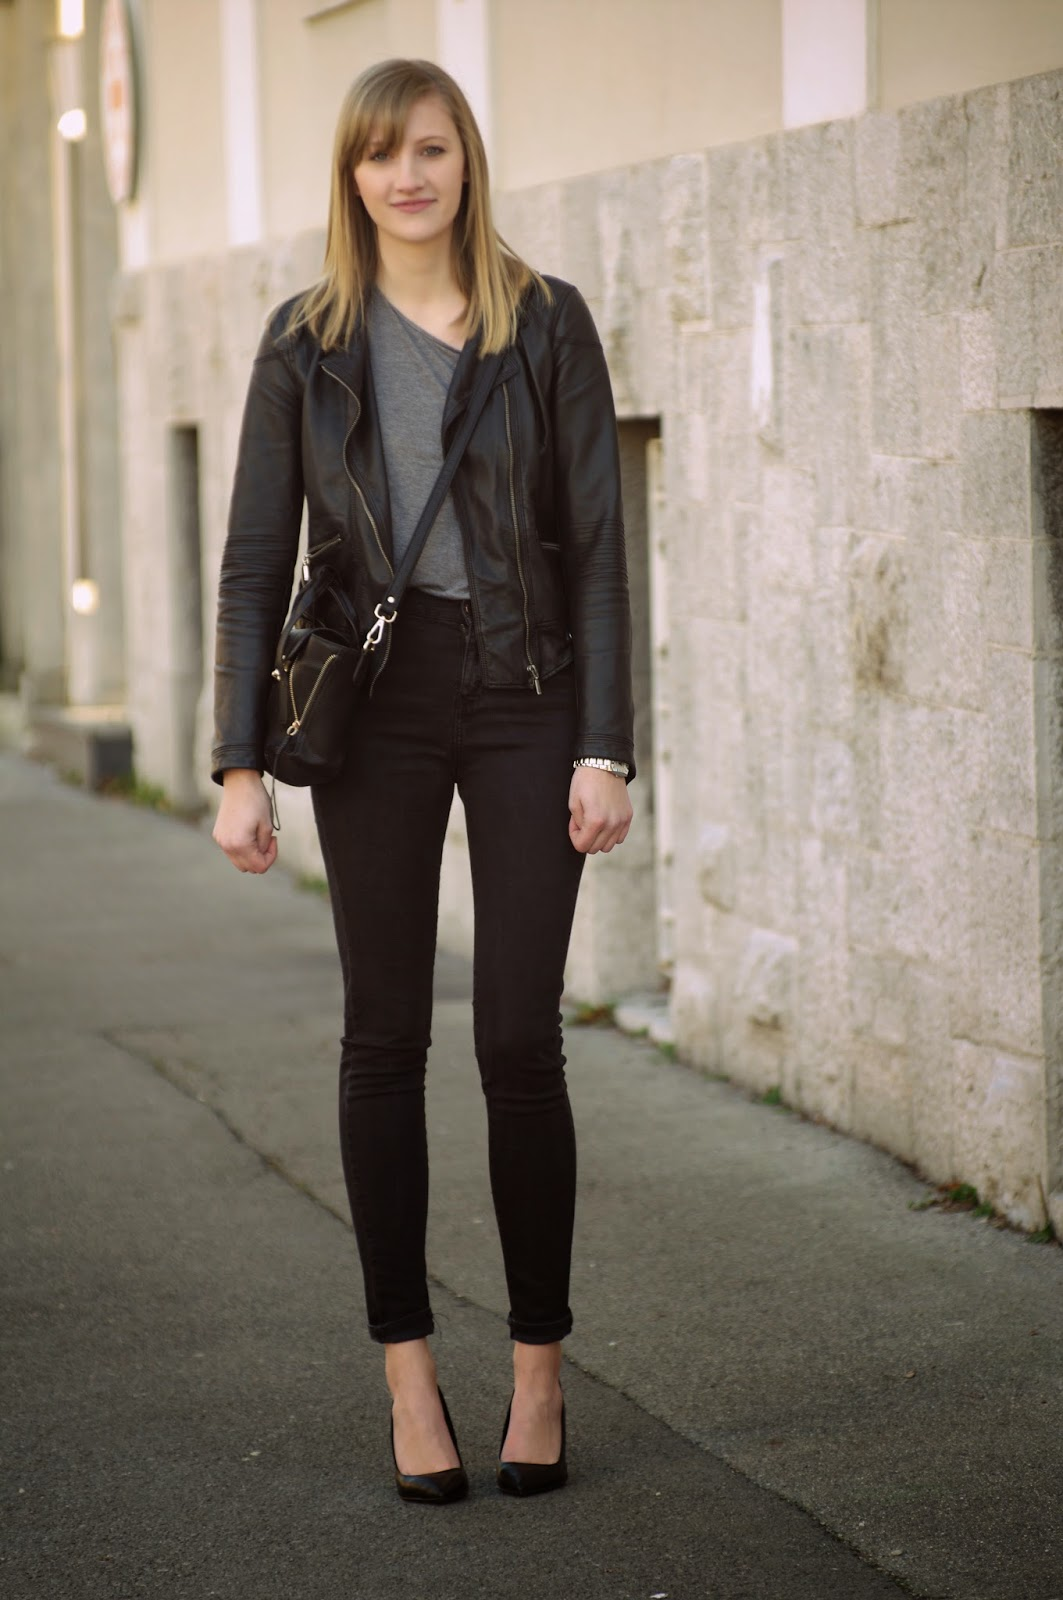 zara high waisted jeans, annaxi mini bag, mini pashli phillip lim replica lookalike, leather jacket zara, pointed toe court heels, style blog blogger, fashion blogger